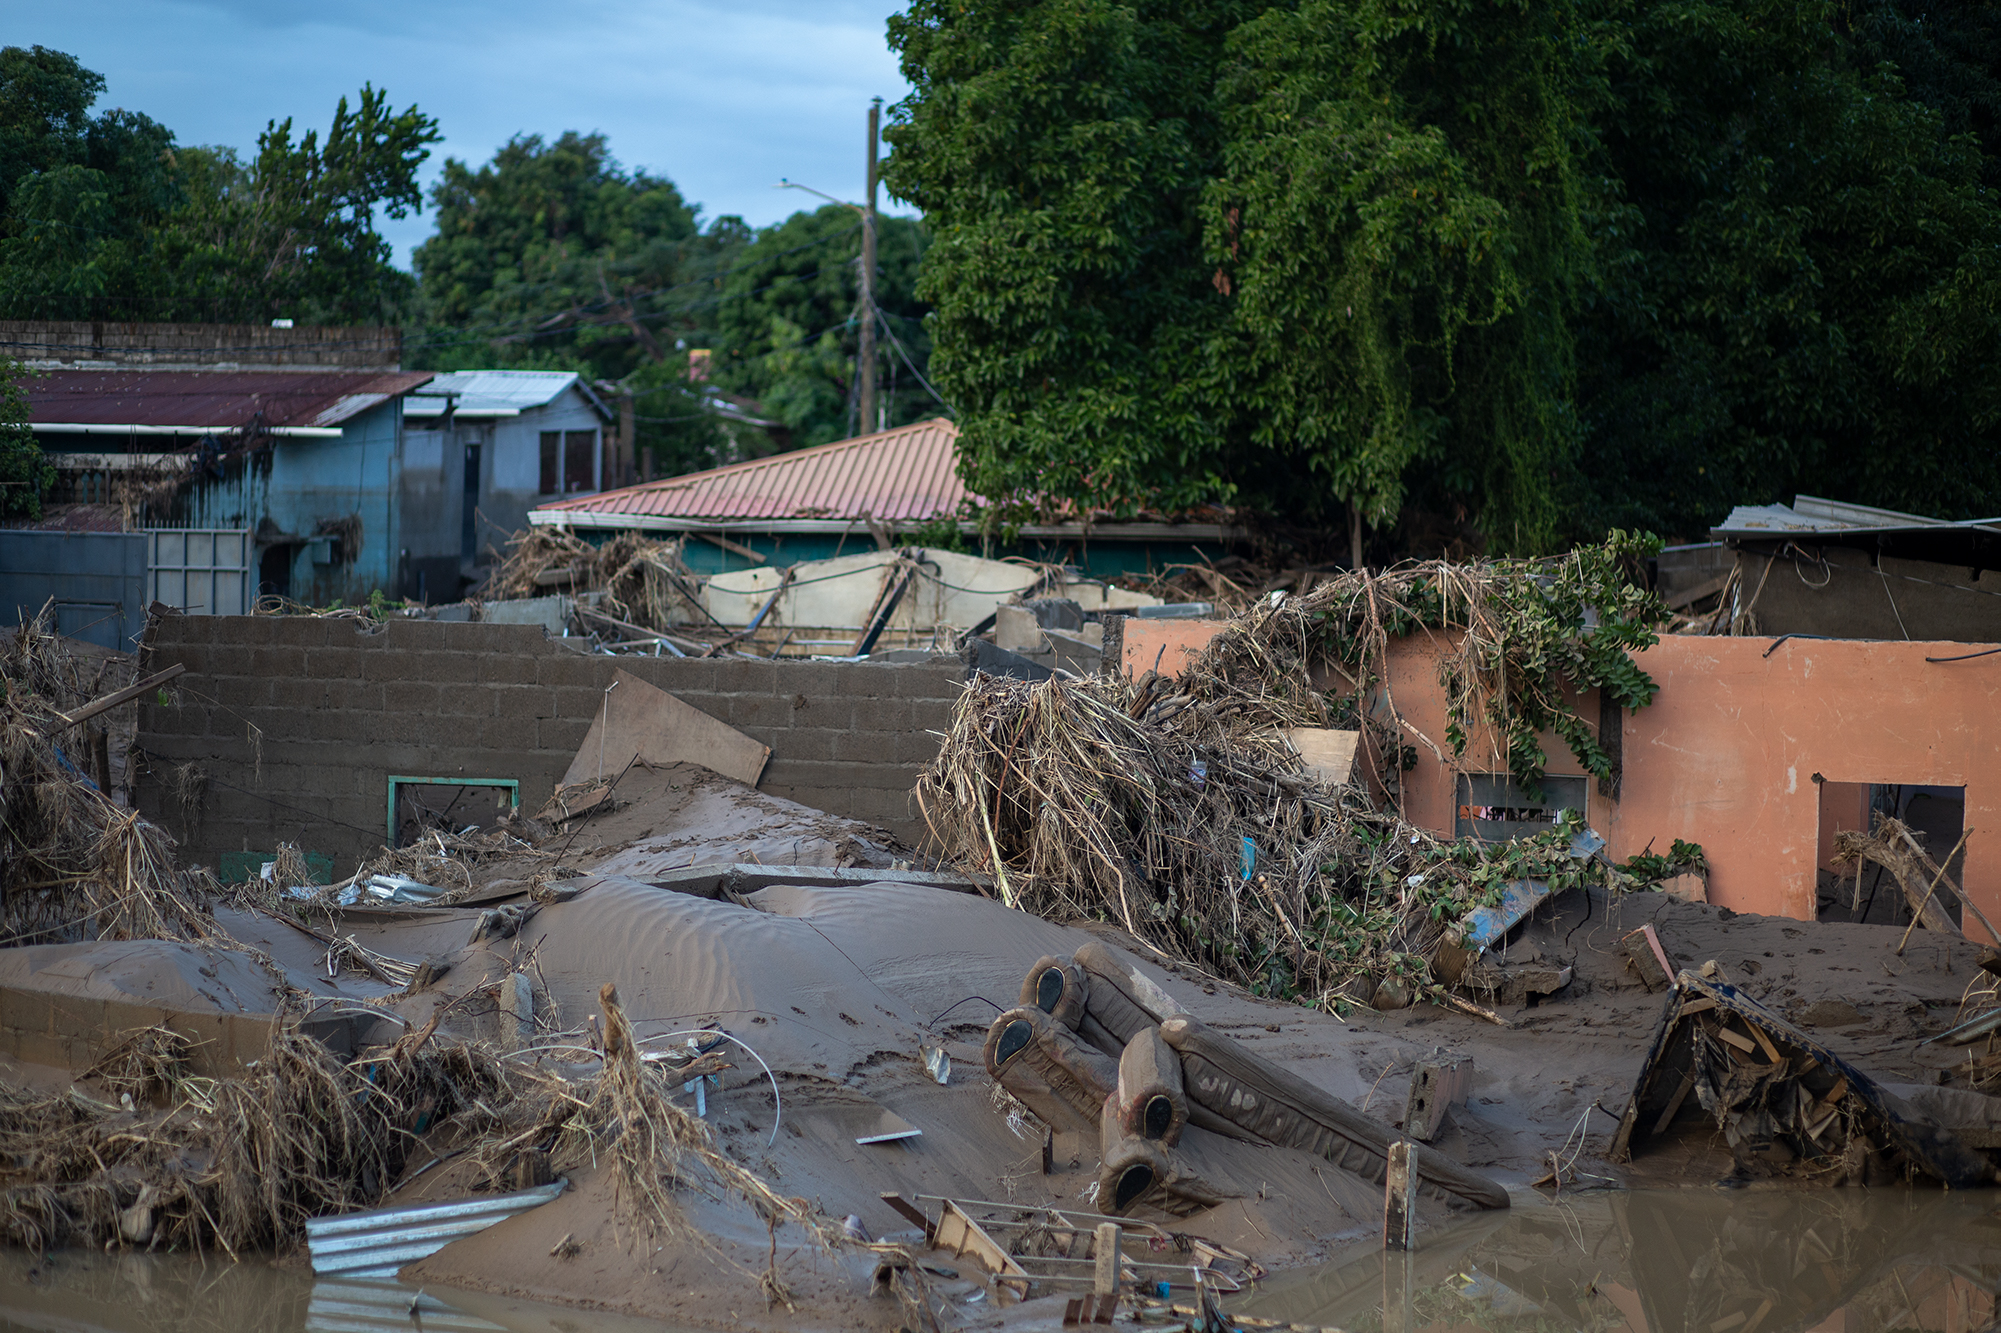 Along the bank of the Chamelecón river, 1500 houses were destroyed by the rain and flooding from tropical storms Eta and Iota. San Pedro Sula, Nov. 20, 2020. Photo: Martín Cálix.